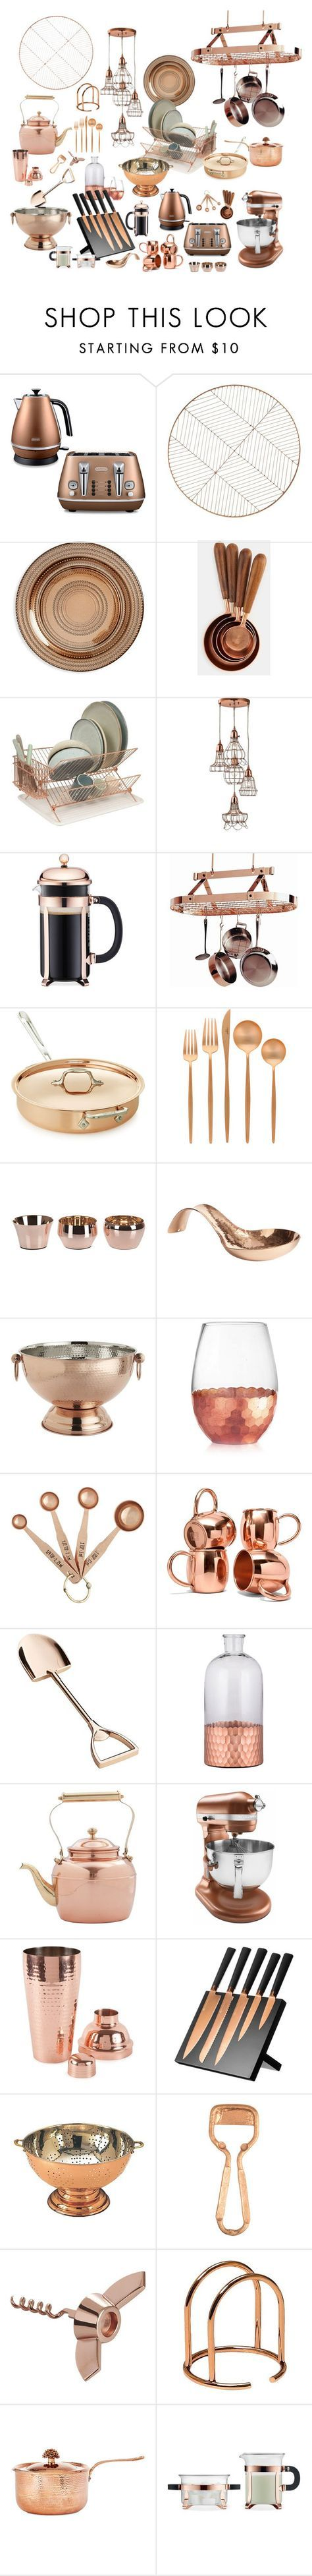 """""""Copper/Kitchen"""" by heyjerseygirl ❤ liked on Polyvore featuring interior, interiors, interior design, home, home decor, interior decorating, DeLonghi, CB2, Europe2You and Bodum"""